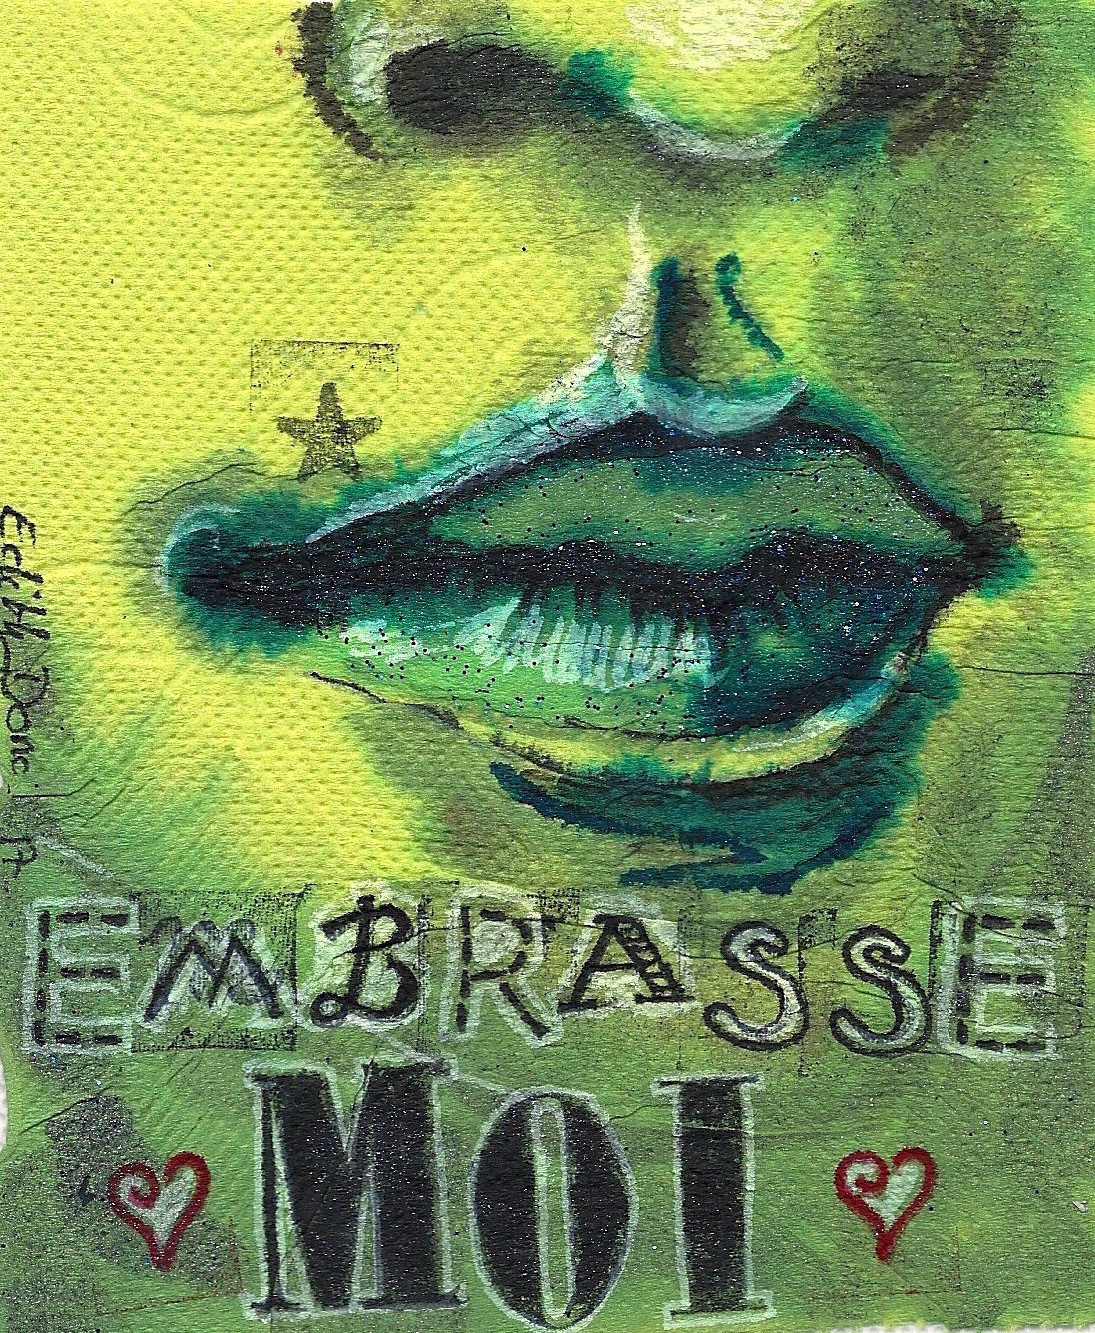 Edith Donc - Embrasse moi